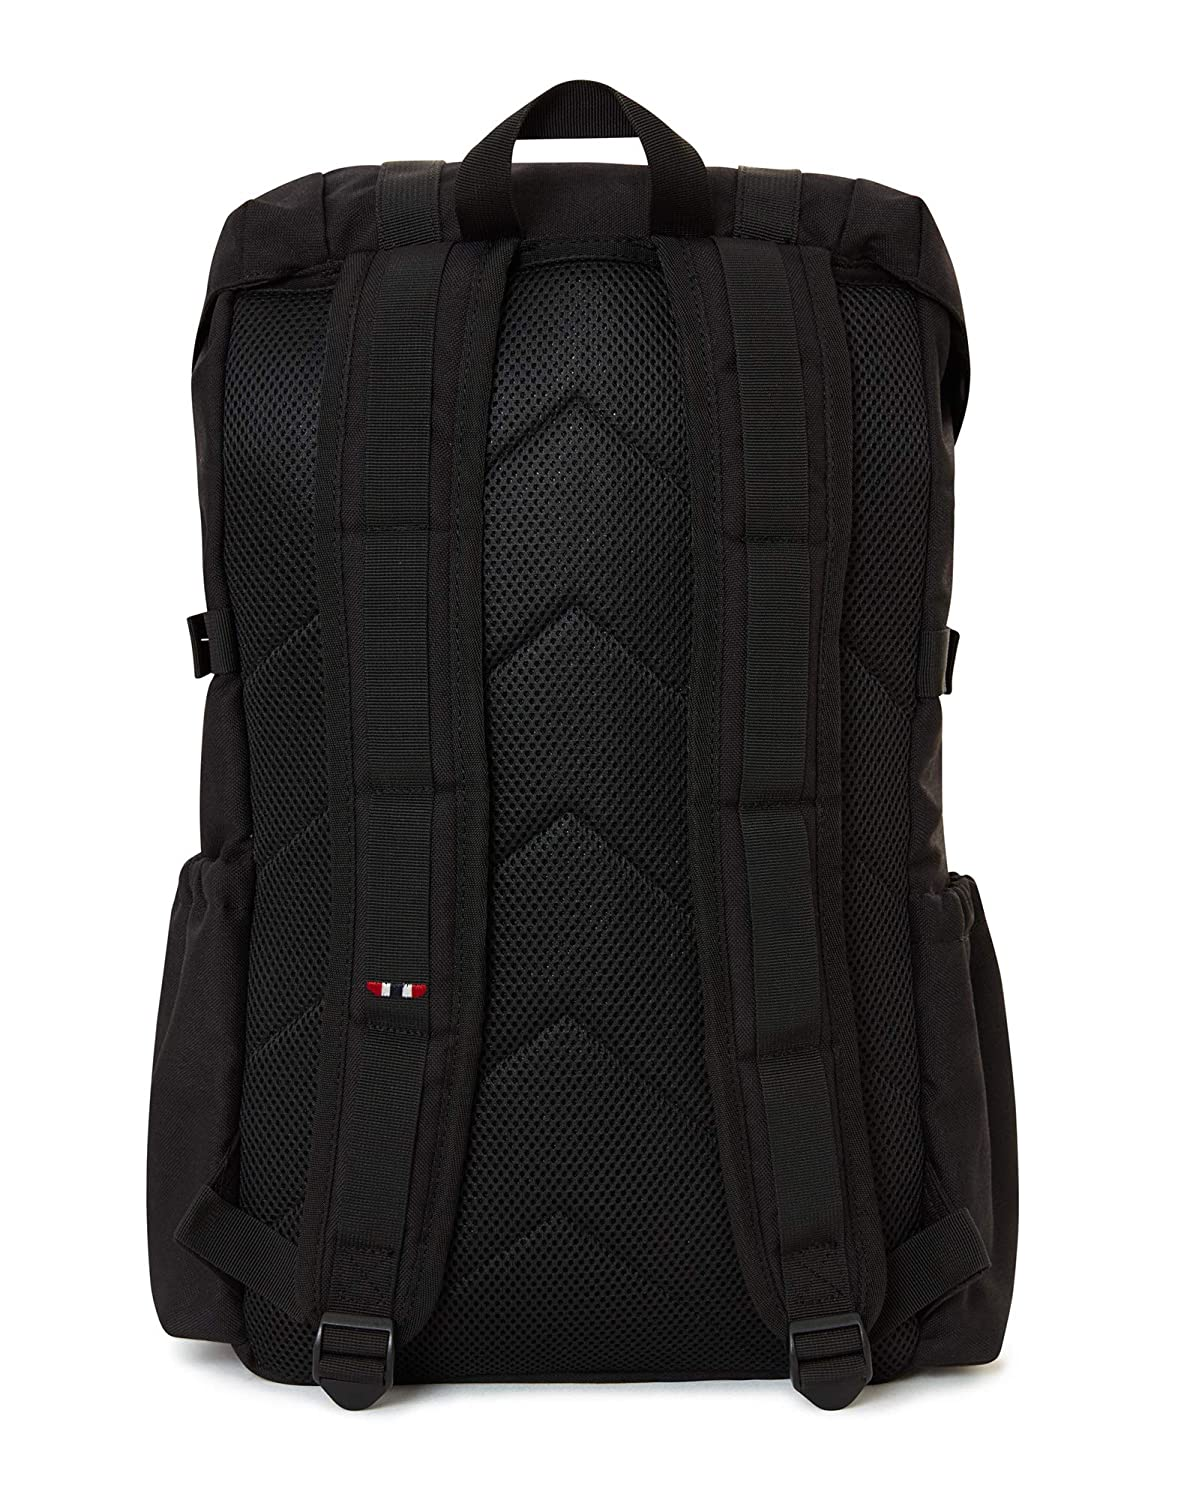 Napapijri HOYAL DAY PACK Mochila tipo casual, 42 cm, 20 liters, Negro (Black): Amazon.es: Equipaje